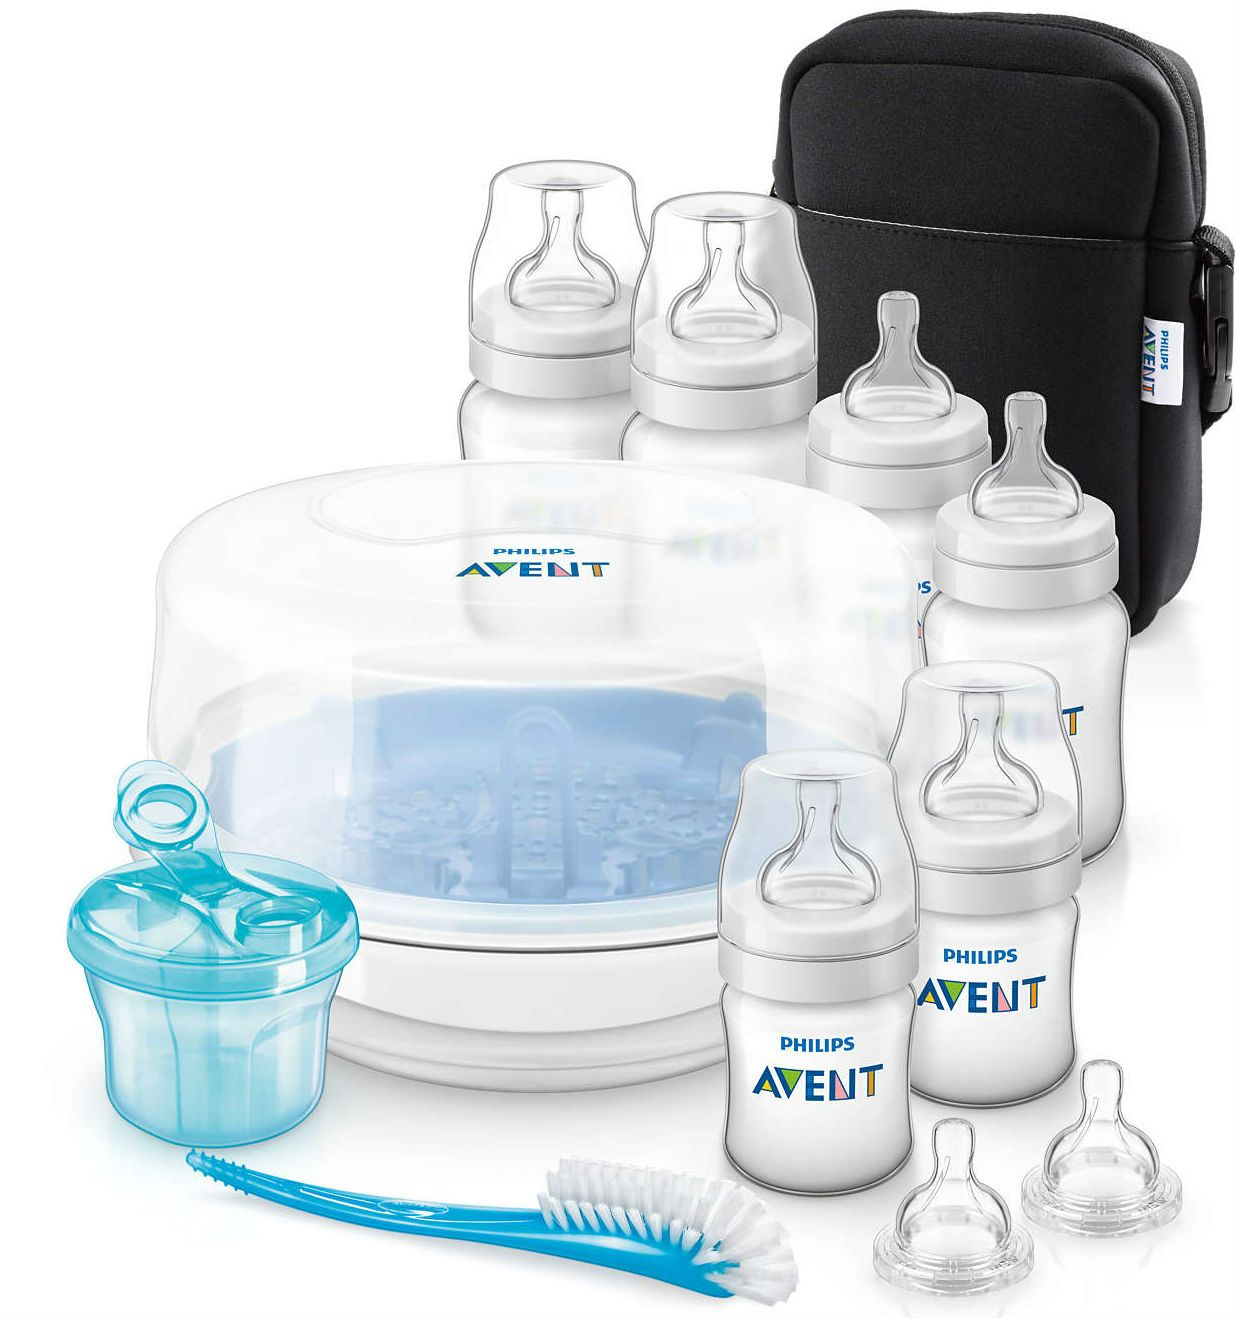 Image of AVENT Classic+ startpakke - Bottle Feeding Essentials Set (AVT-FED20)